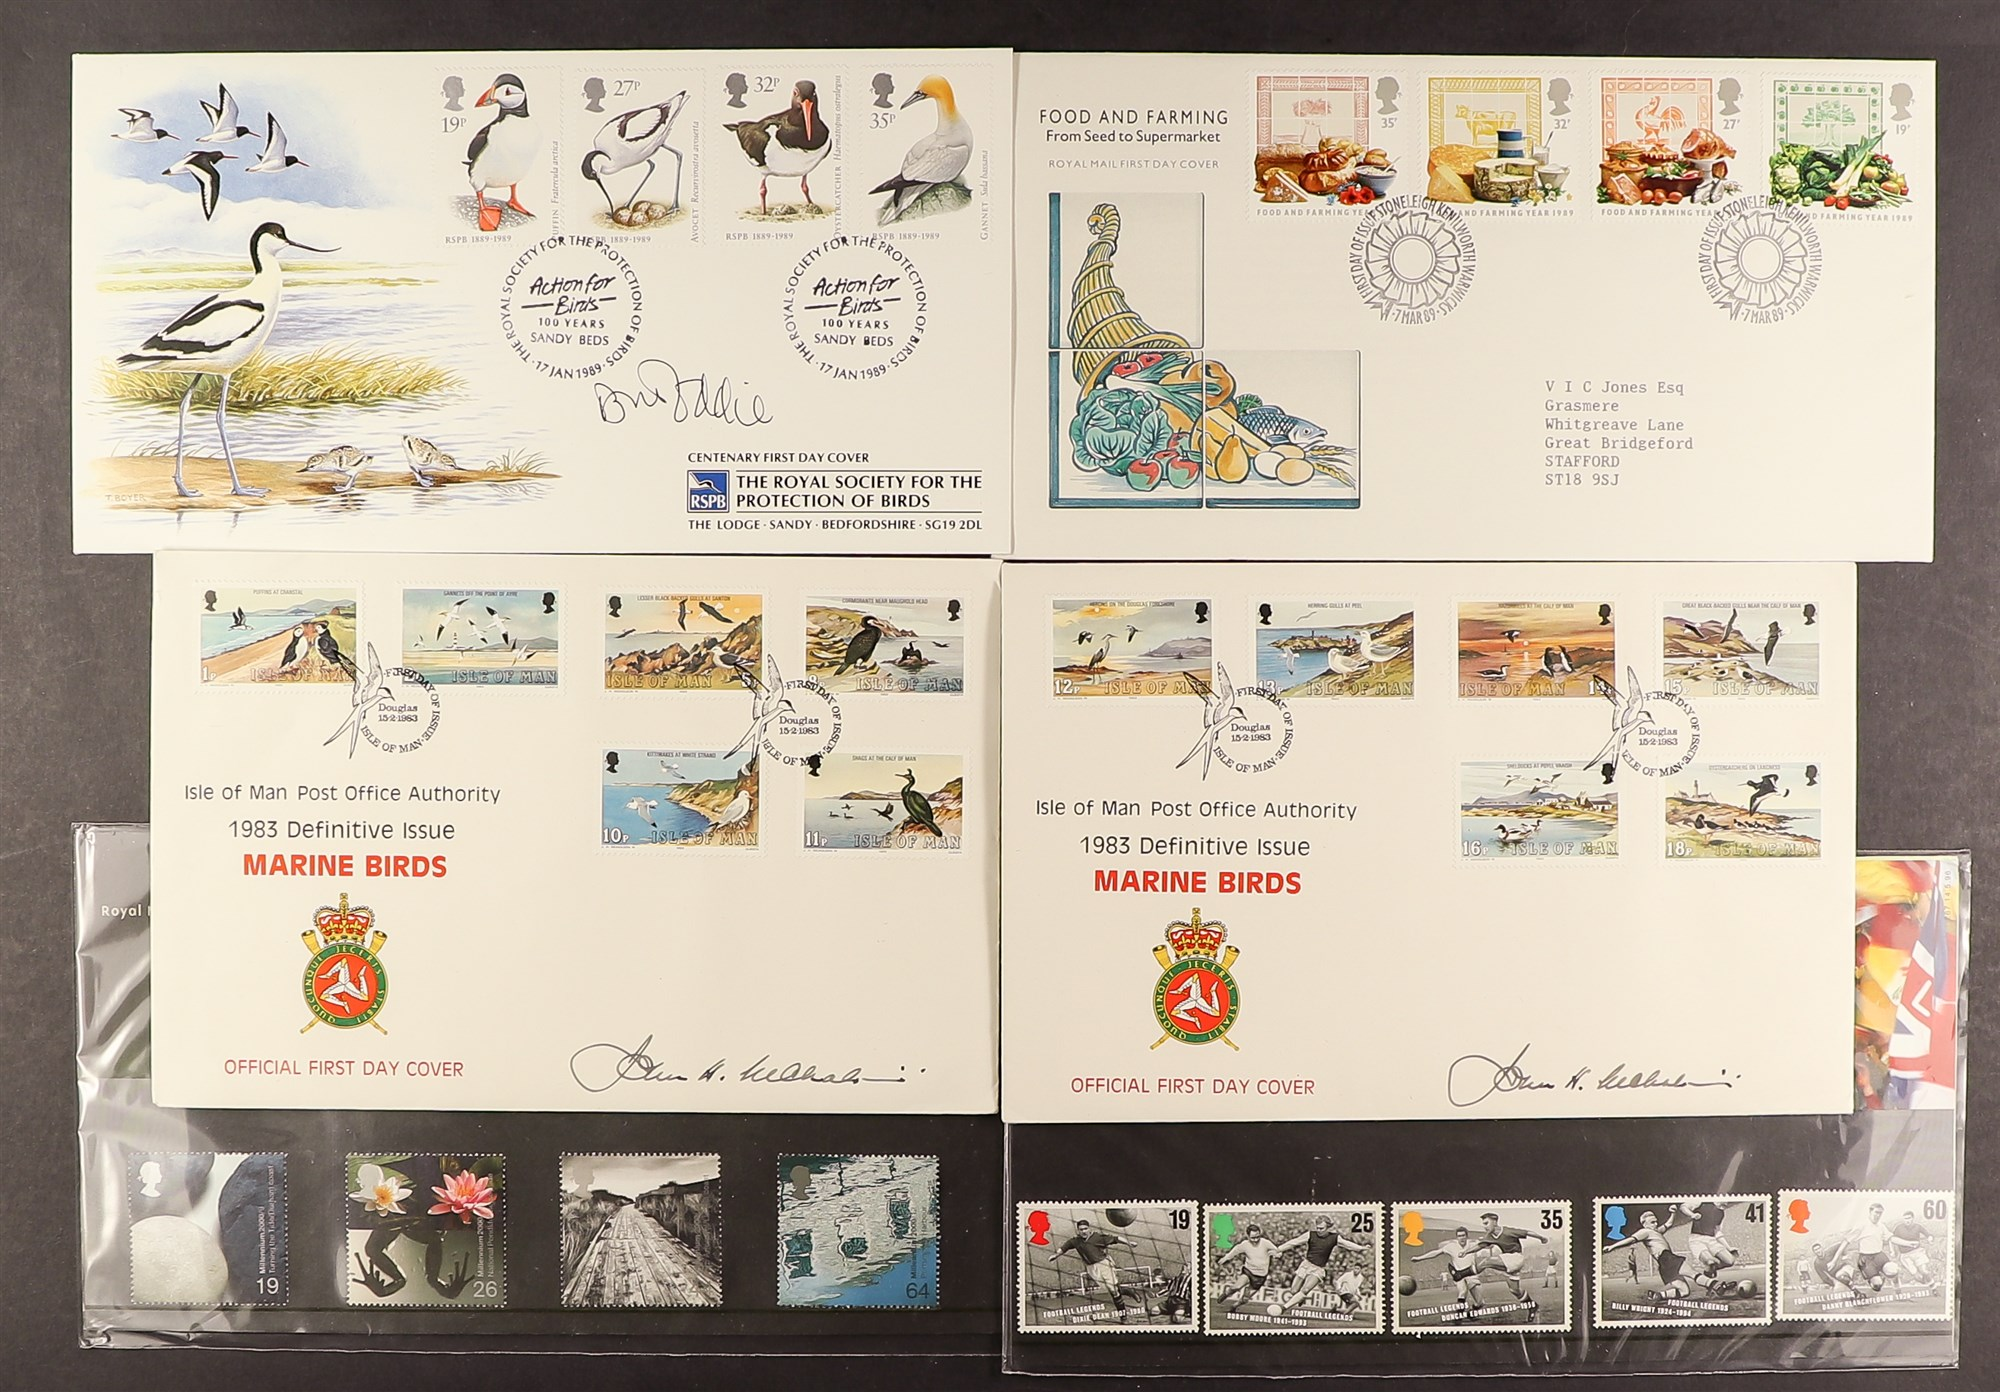 COLLECTIONS & ACCUMULATIONS WORLD SORTER CARTON Birds covers Isle of Man 1983 (2) signed by designer - Image 2 of 4